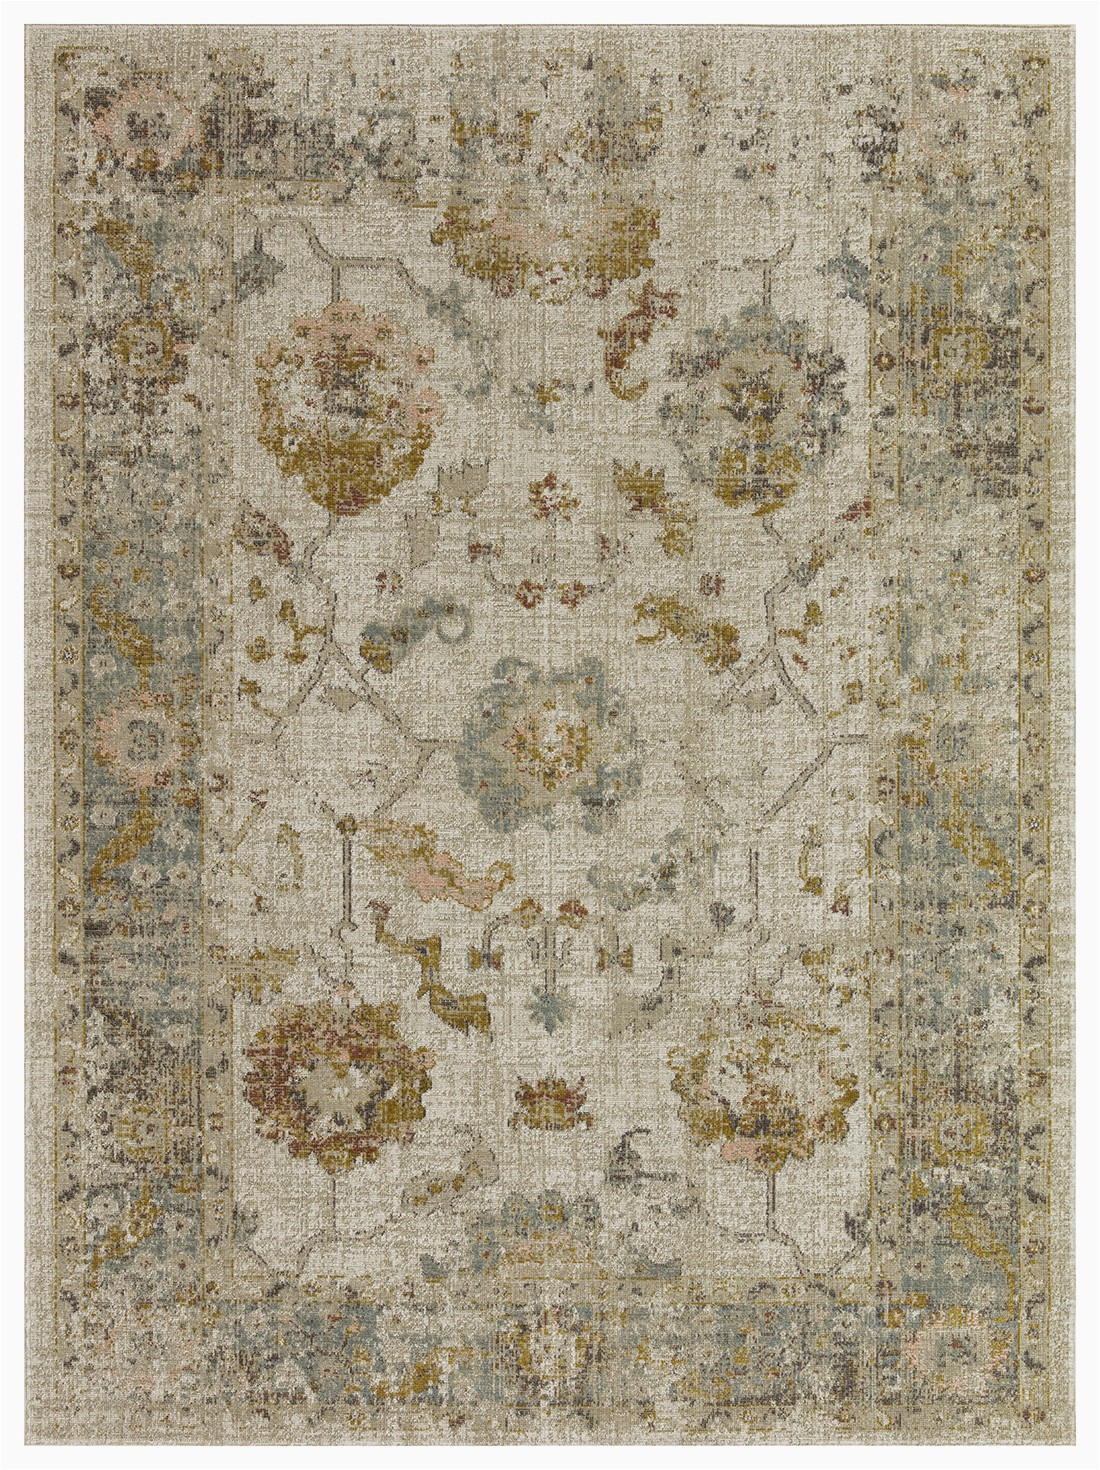 "Cat themed area Rugs 5×7 Lapis Rugs area Rug 5×7 Alcantra Vintage Collection oriental Low Pile Turkish Carpet 5 2"" by 7 2"" Cream Blue Walmart"